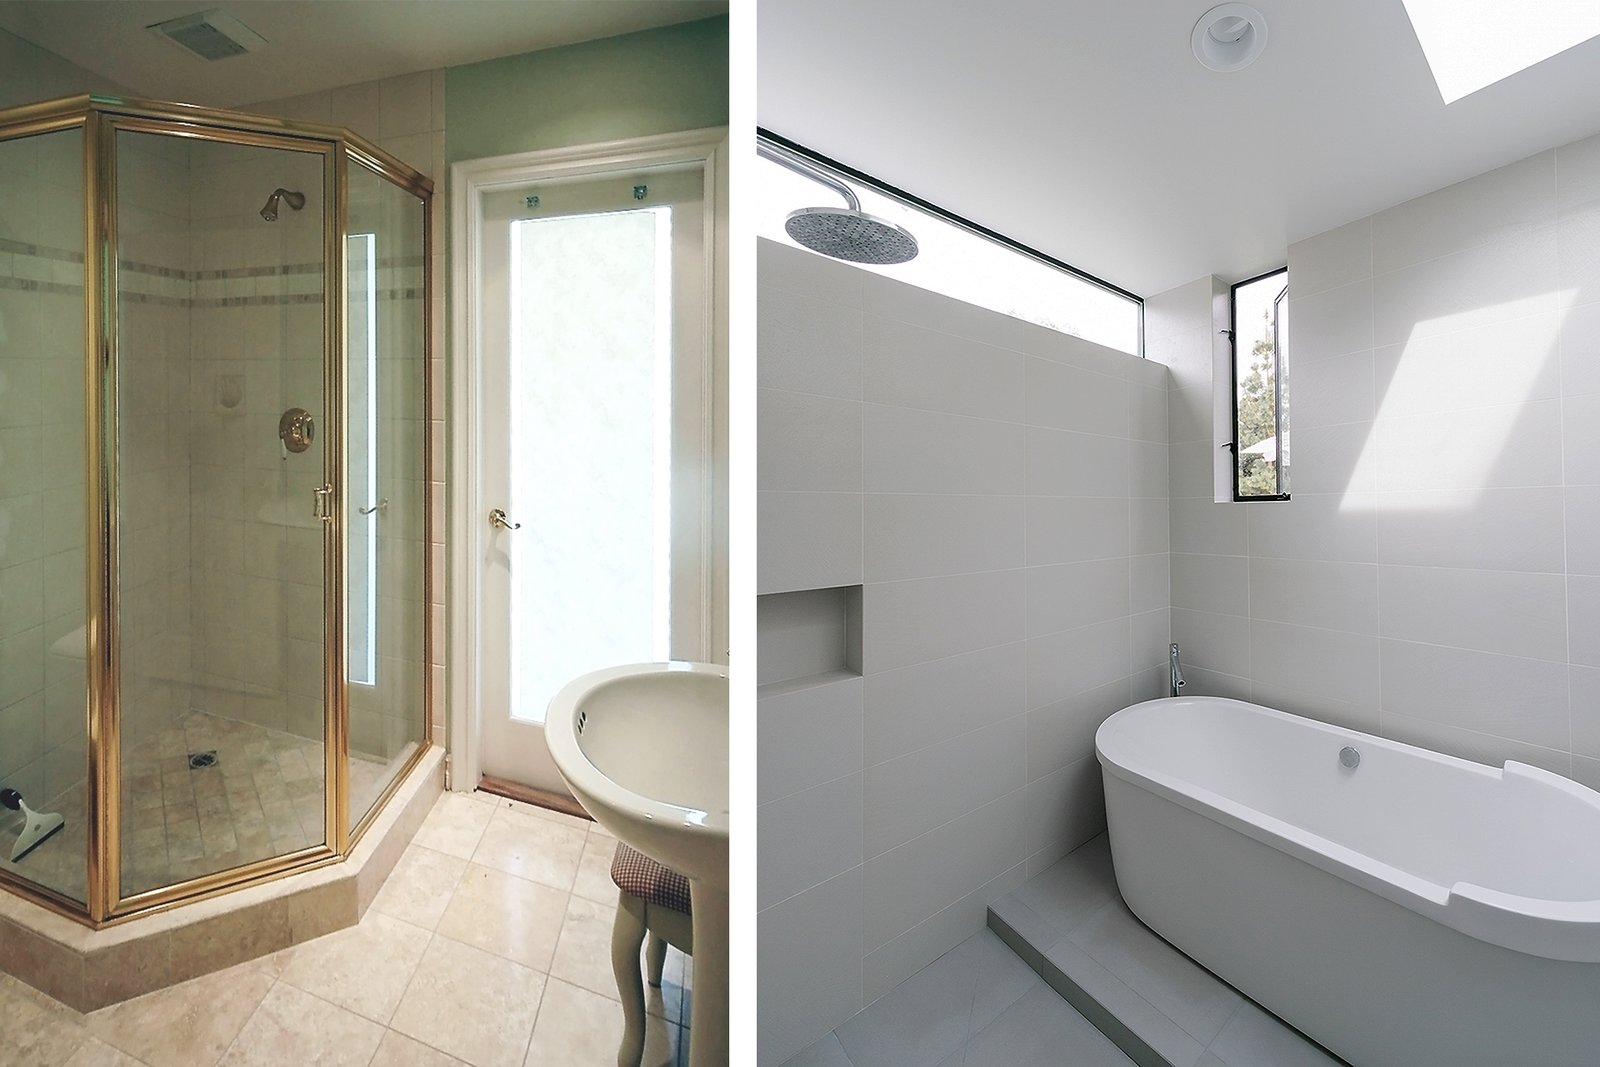 BEFORE / AFTER  [master bathroom, villa park modern] Tagged: Bath Room.  Villa Park Modern by MYD studio, inc.